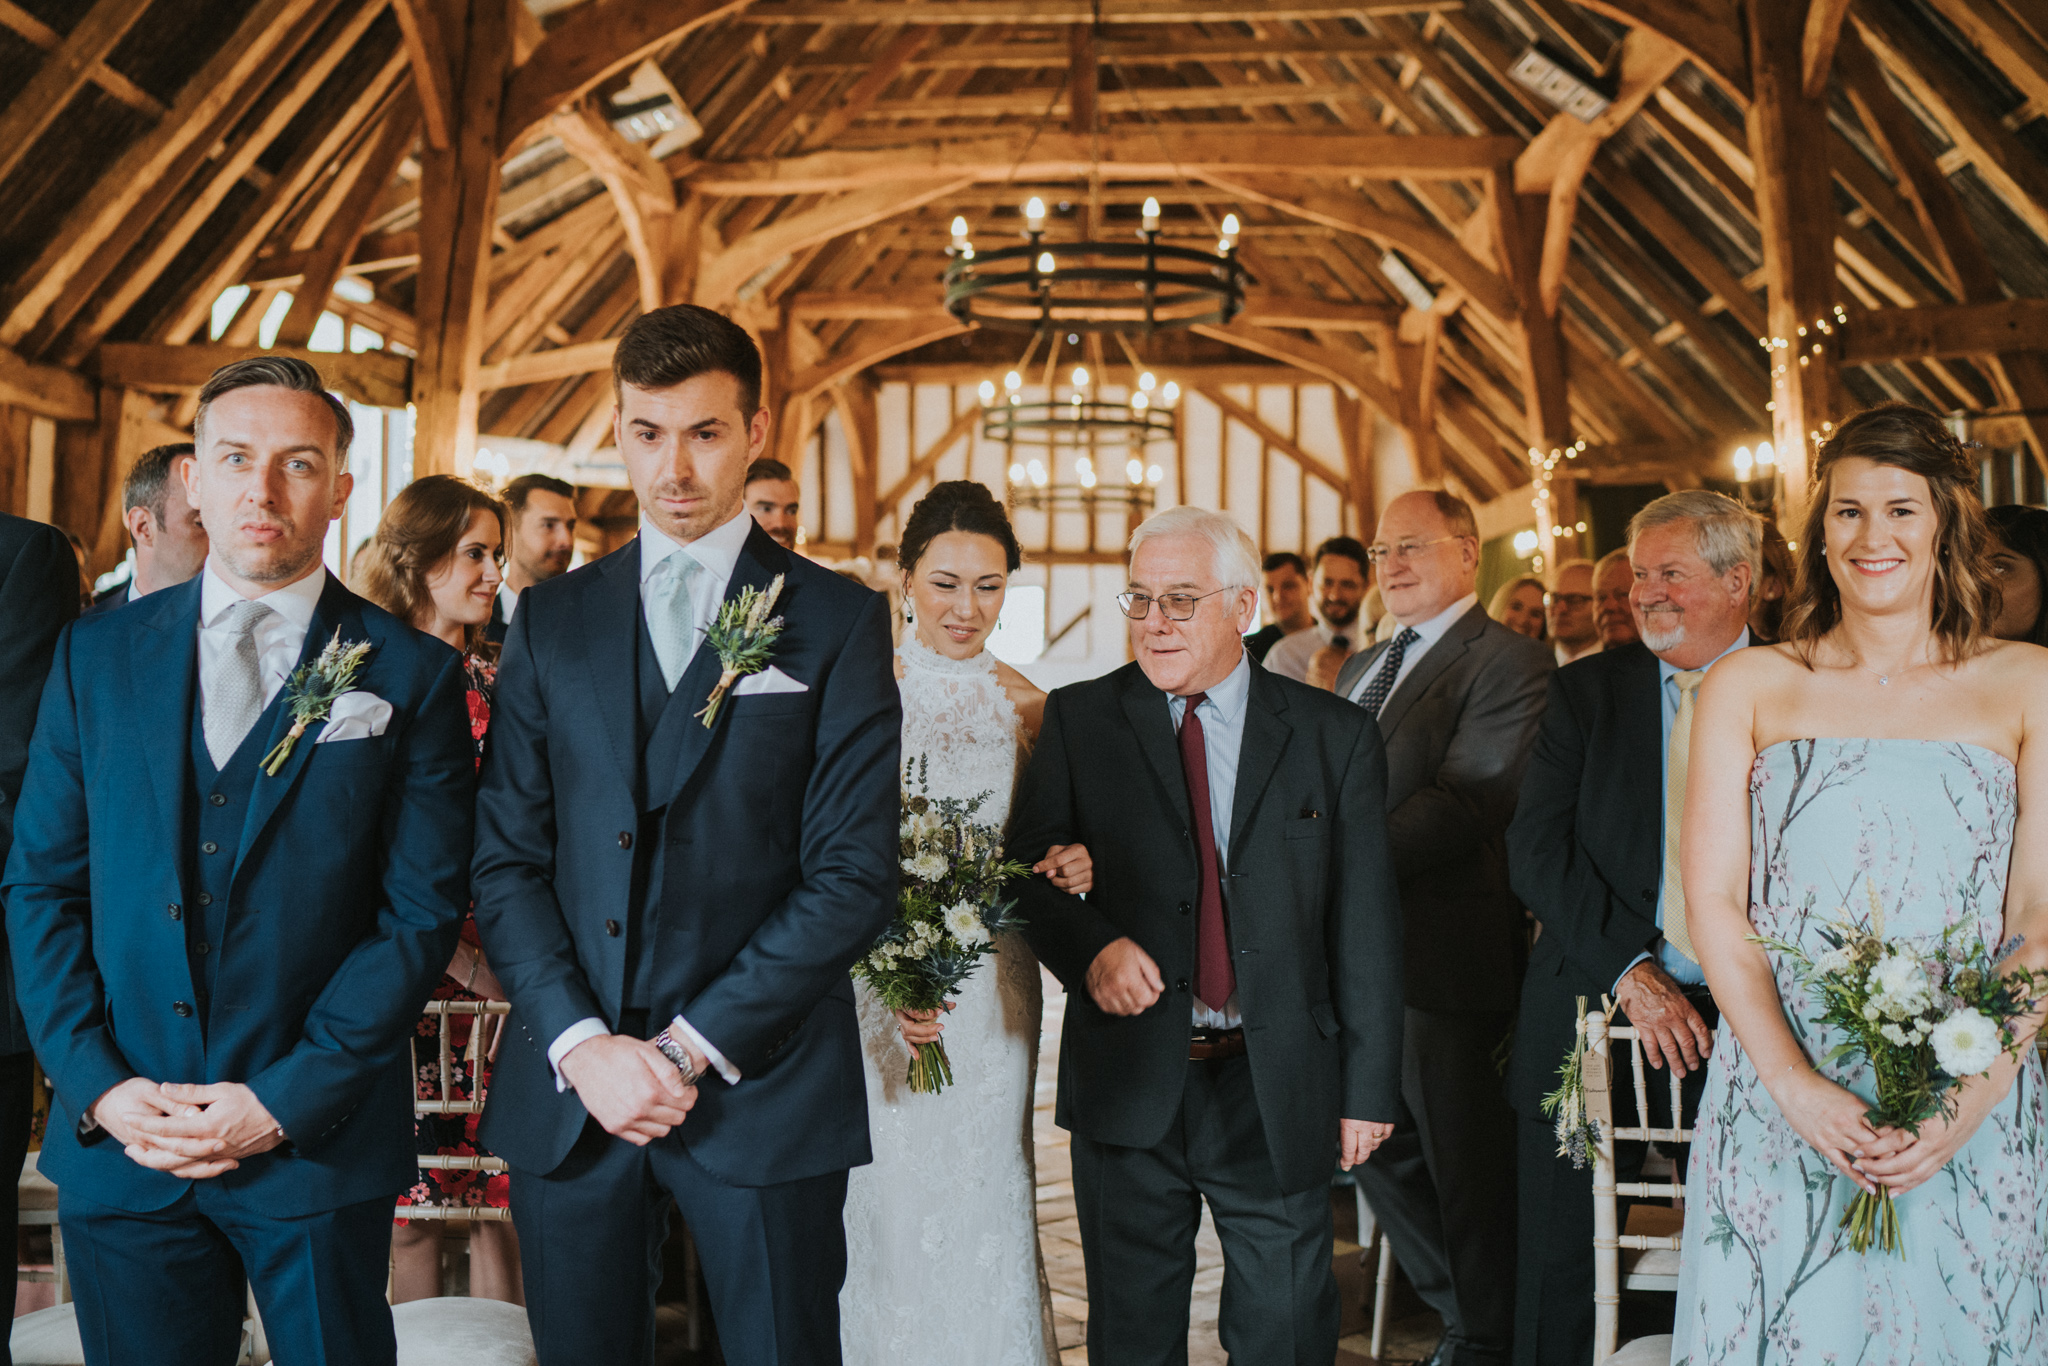 jane-patrick-smeetham-hall-barn-grace-elizabeth-colchester-essex-alternative-wedding-lifestyle-photographer-essex-suffolk-norfolk-devon (16 of 52).jpg